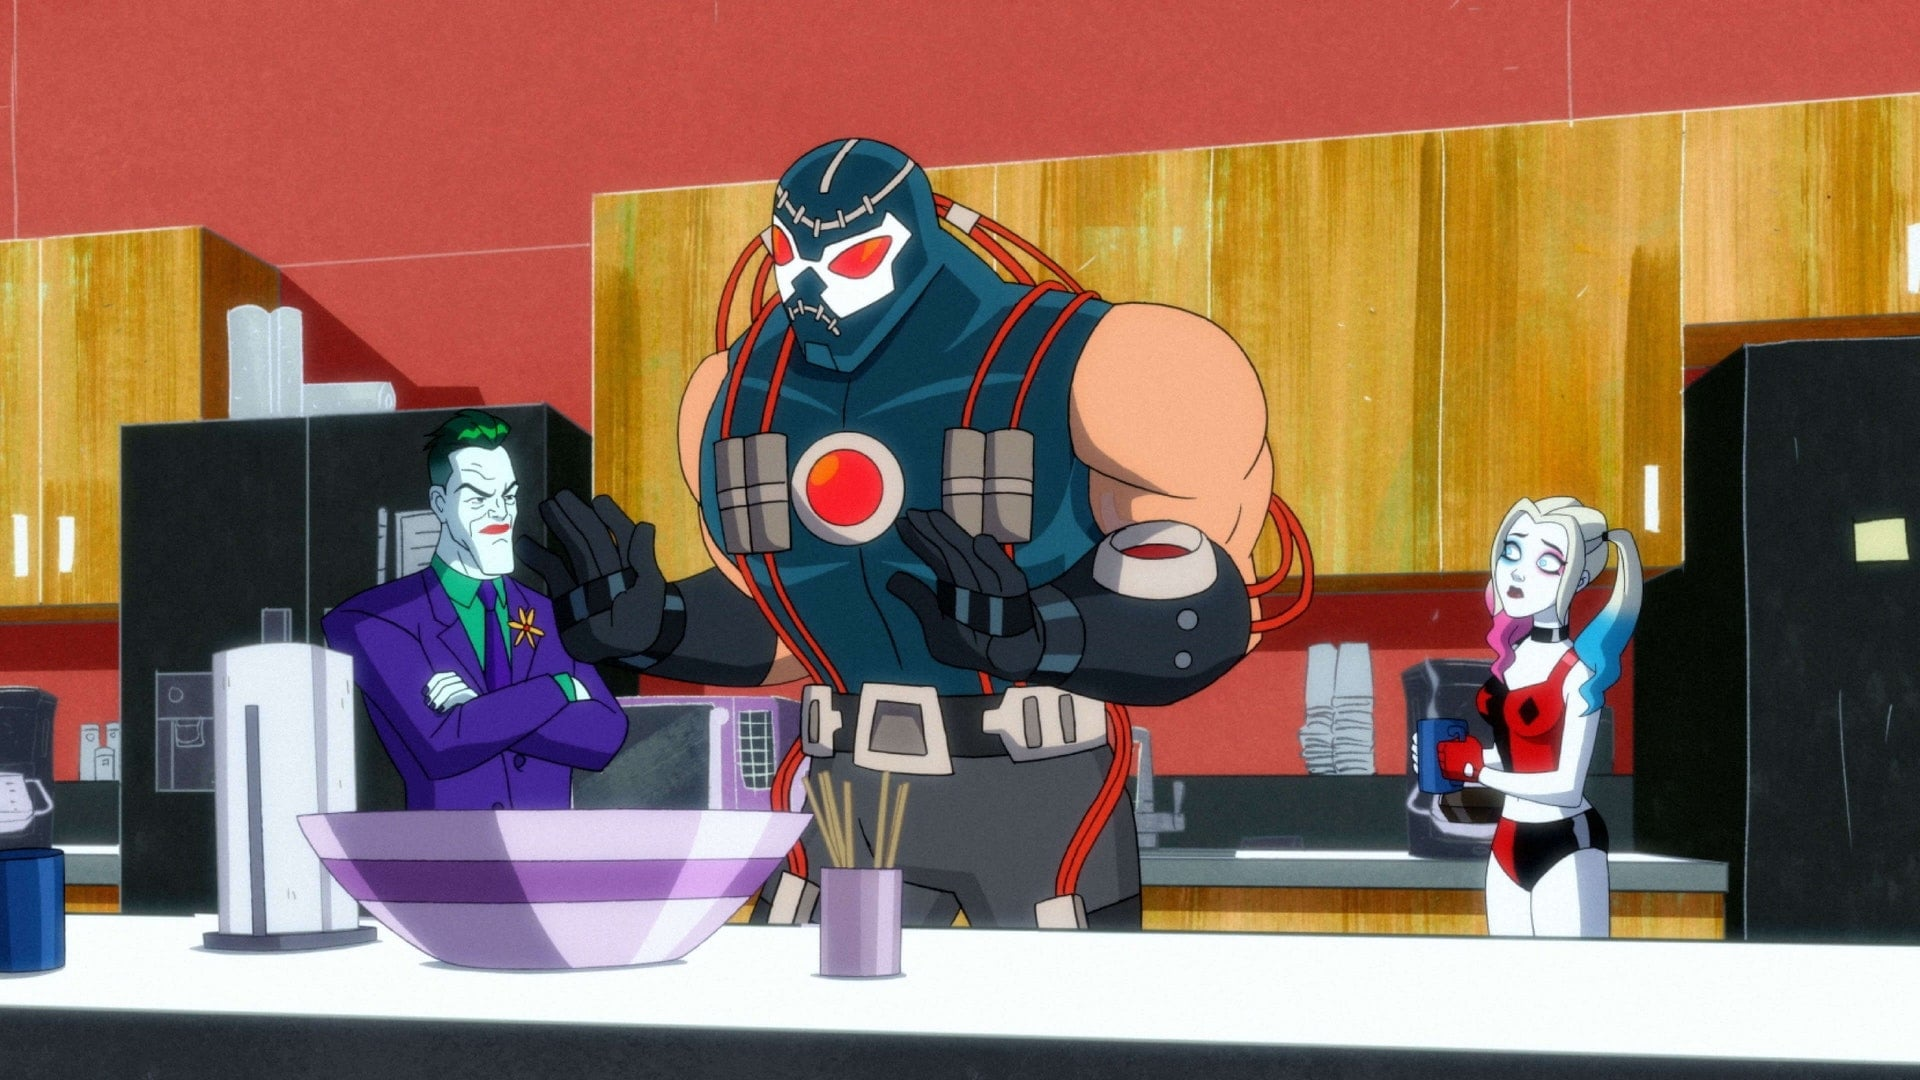 Harley Quinn - Season 1 Episode 9 : A Seat at the Table